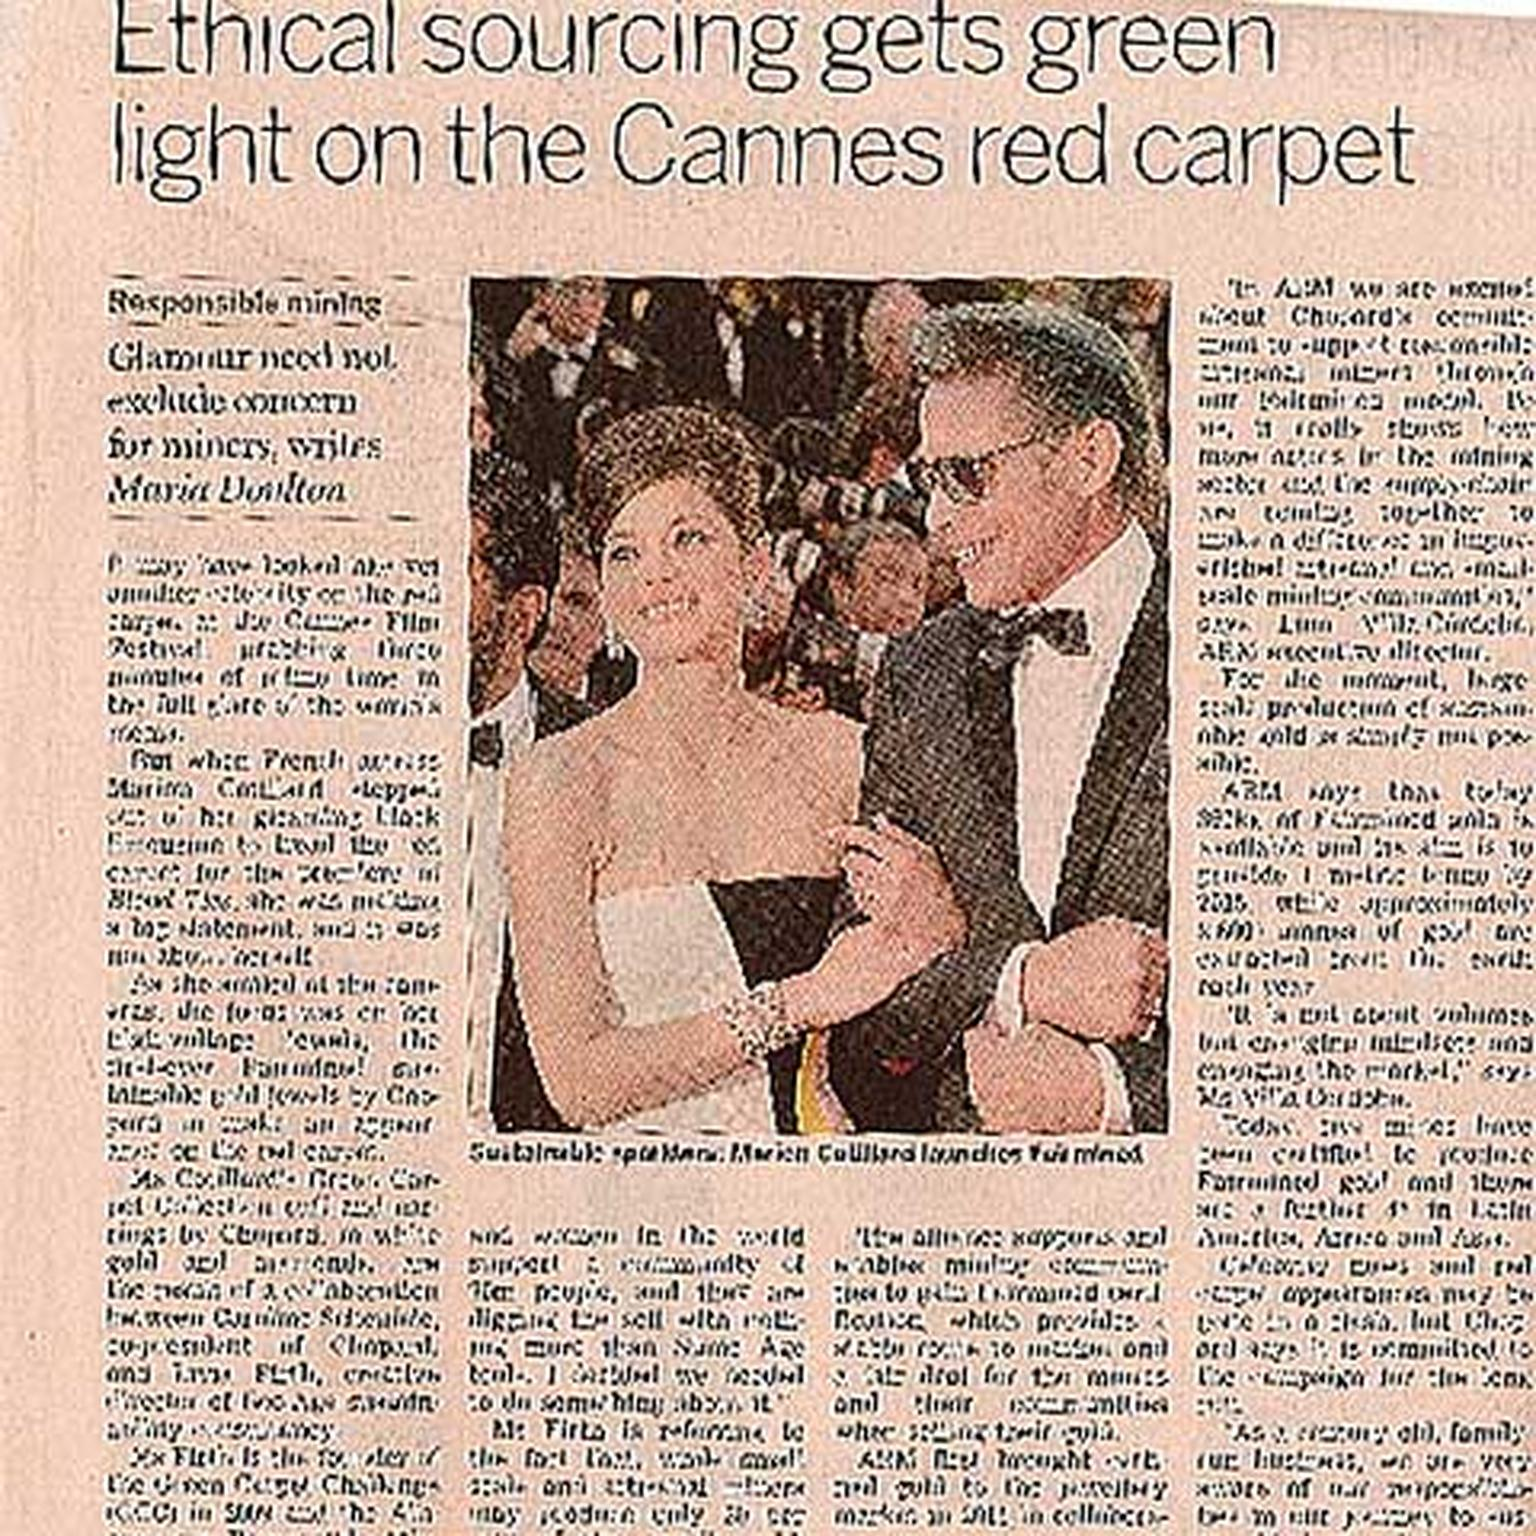 FT-Ethical-sourcing